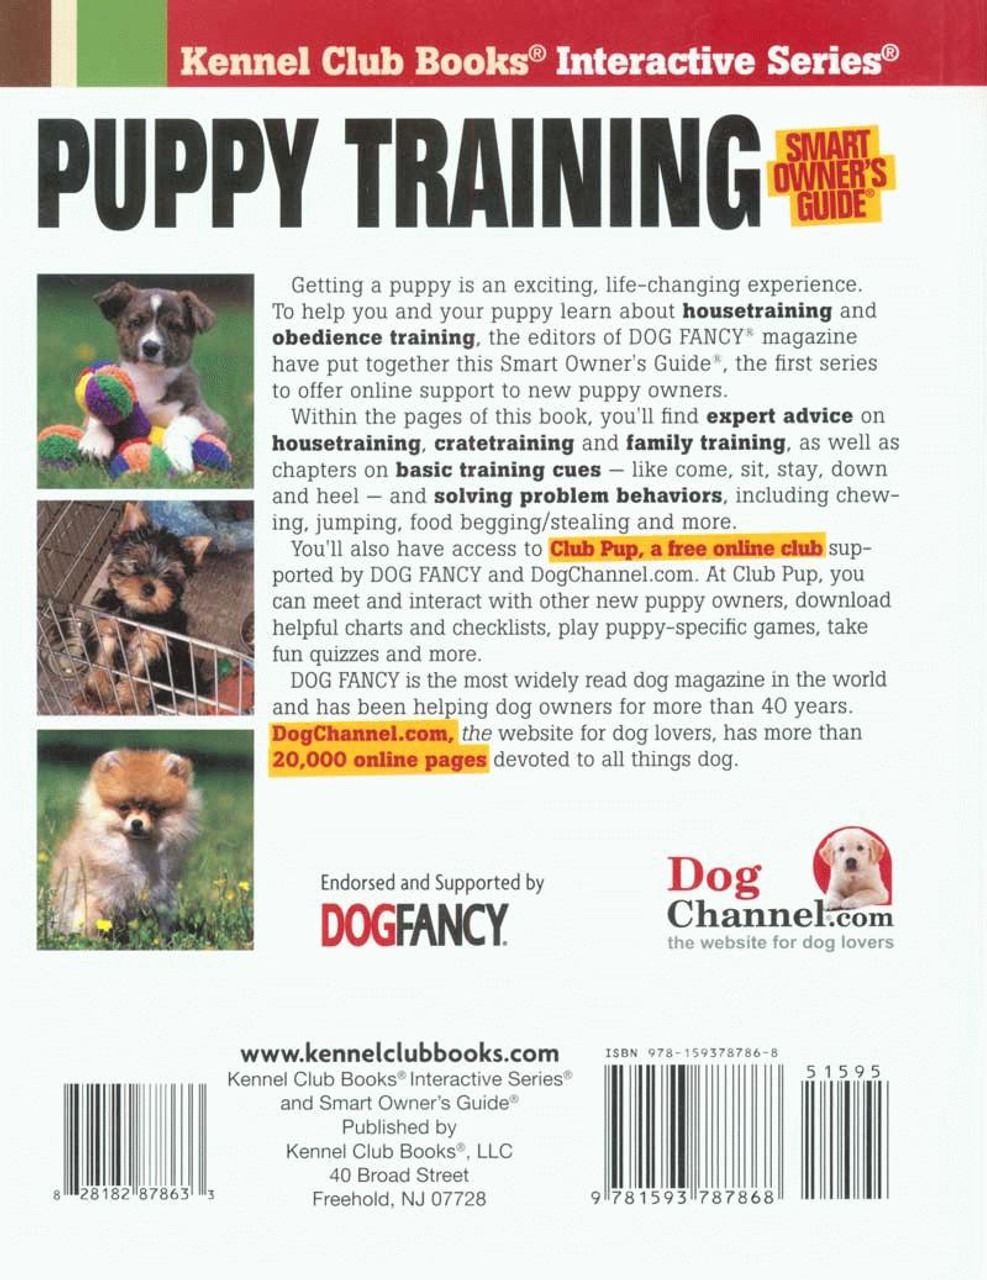 Ebook: Puppy Training - Smart Owner's Guide